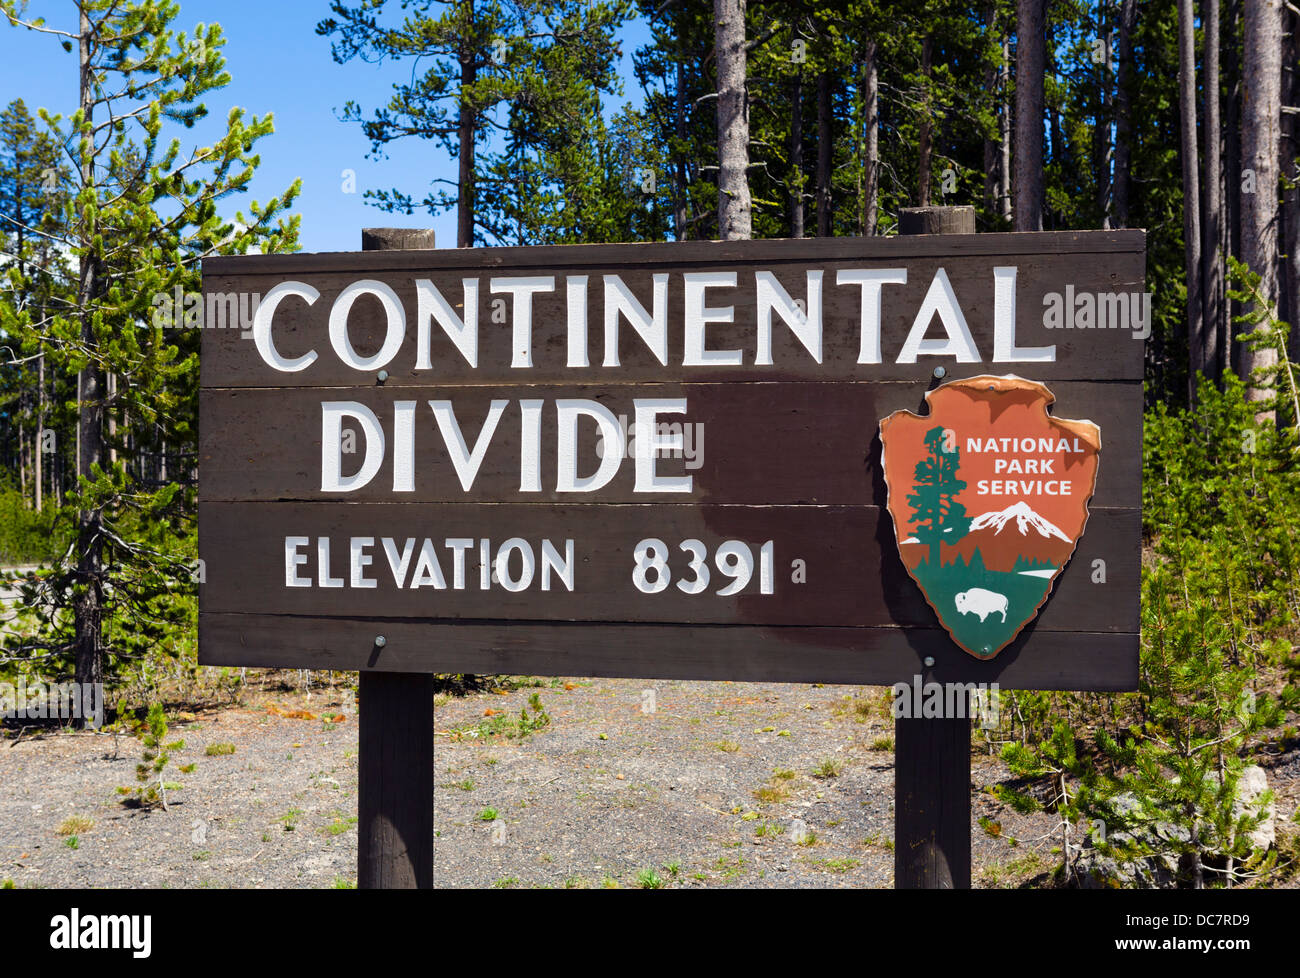 Sign indicatiing the position of the Continental Divide, Yellowstone National Park, Wyoming, USA - Stock Image